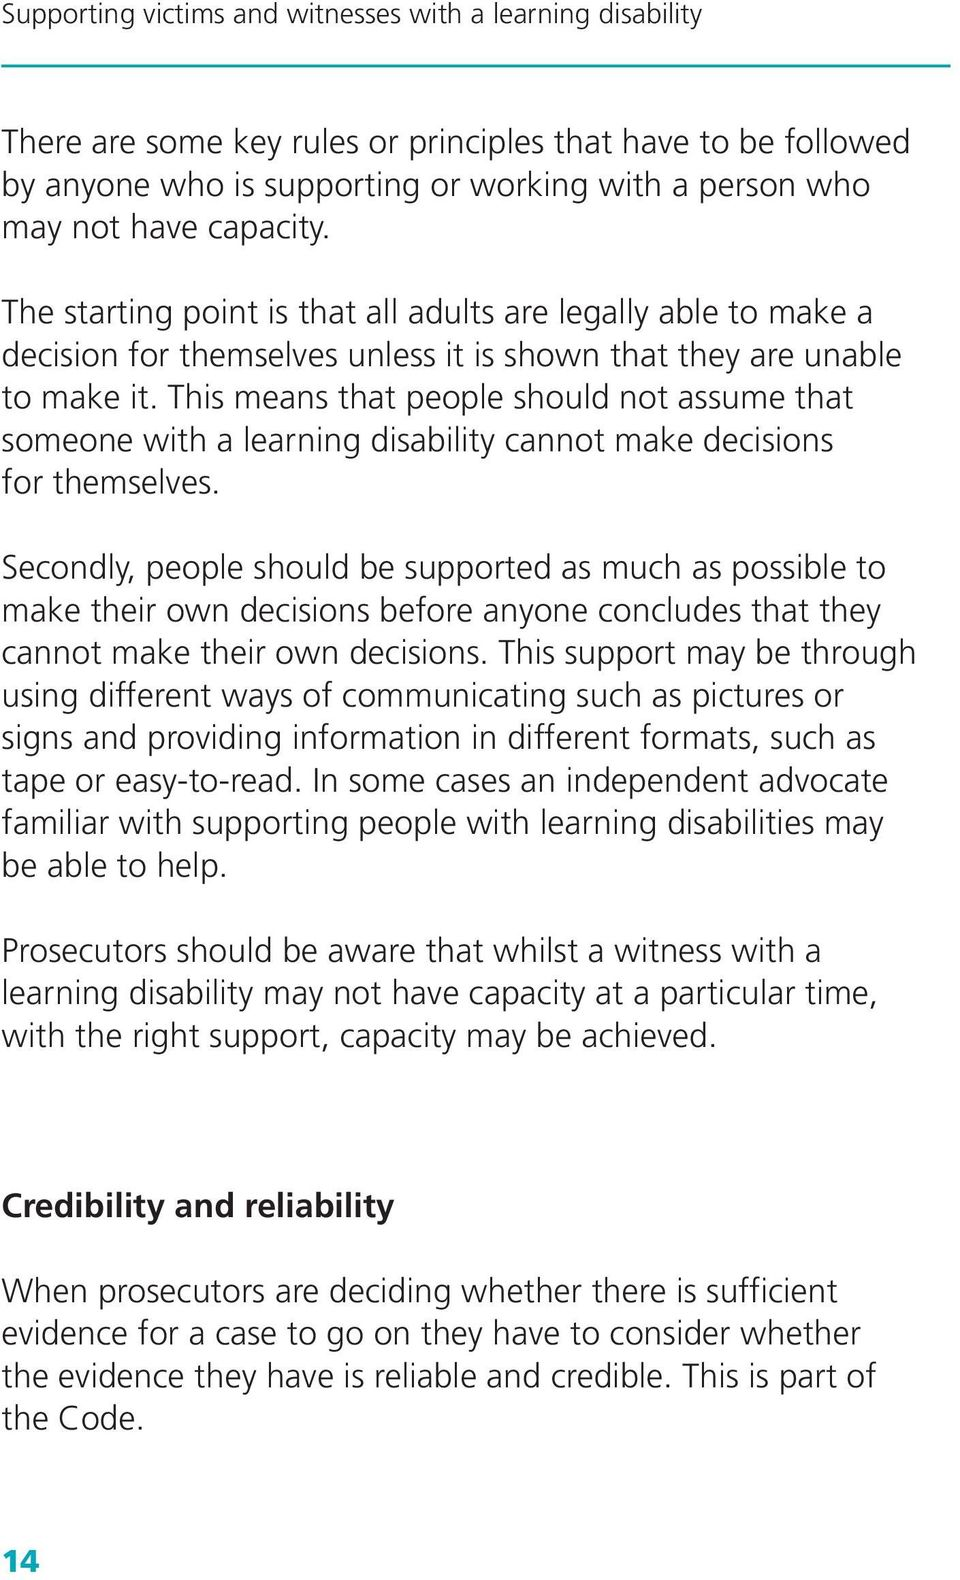 This means that people should not assume that someone with a learning disability cannot make decisions for themselves.